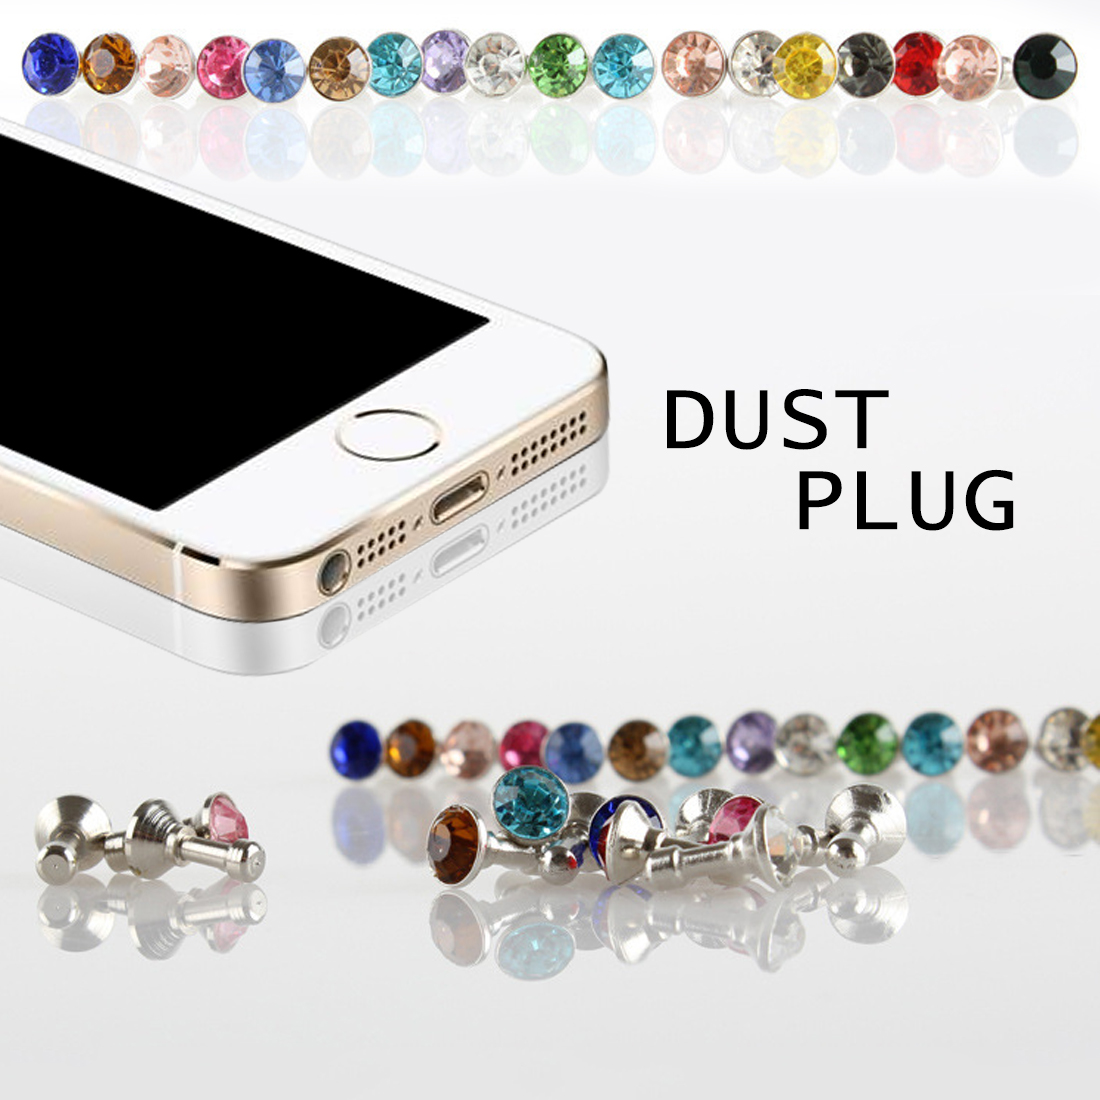 Marsnaska Universal 5pcs 3.5mm Diamond Dust Plug Mobile Phone accessories gadgets Earphone Plugs For iPhone 5 5s 6 6s